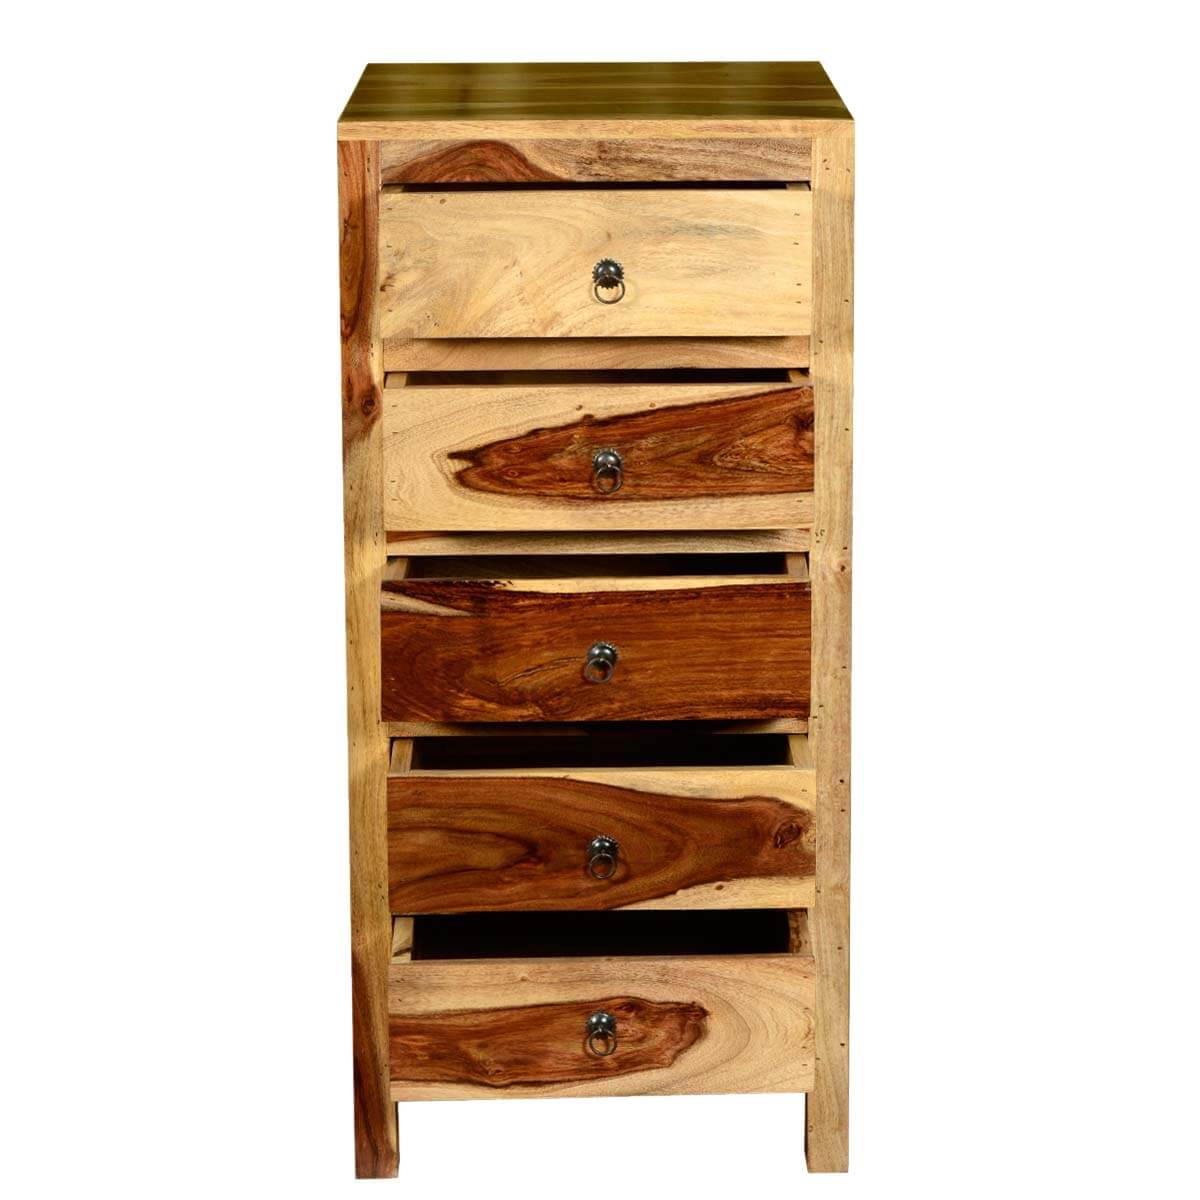 Dallas ranch solid wood contemporary drawer tower dresser